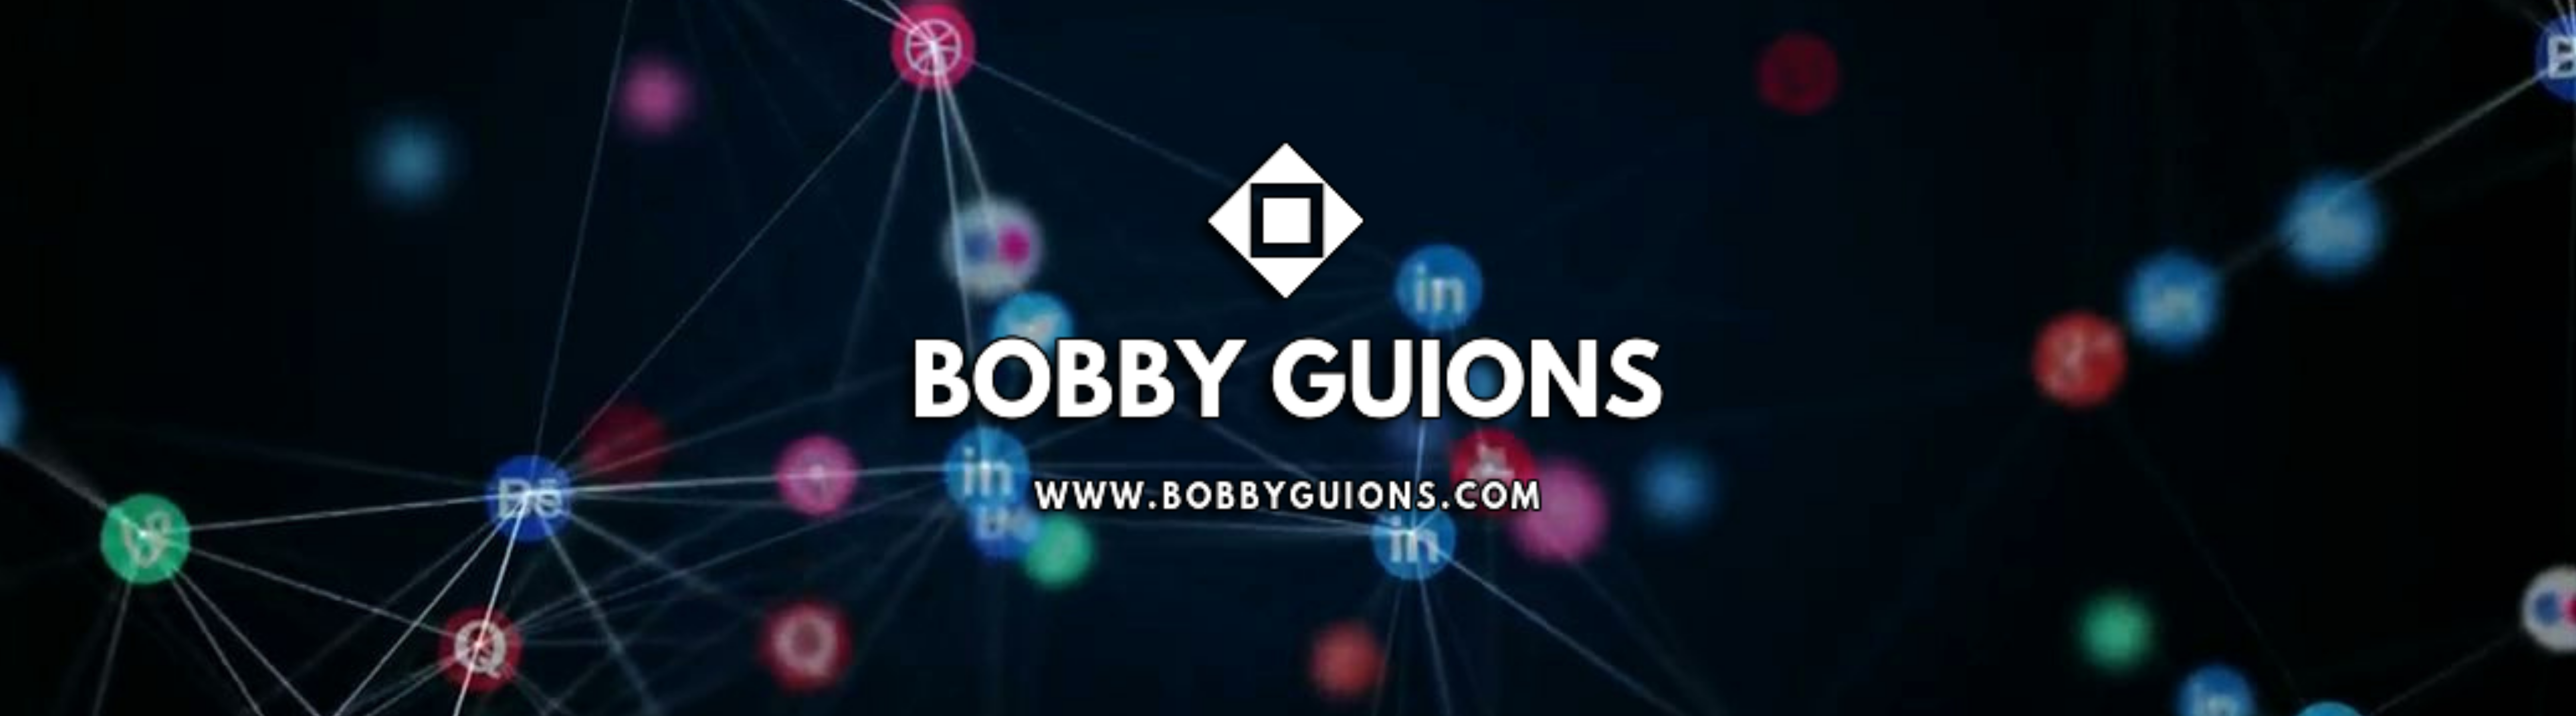 Bobby Guions